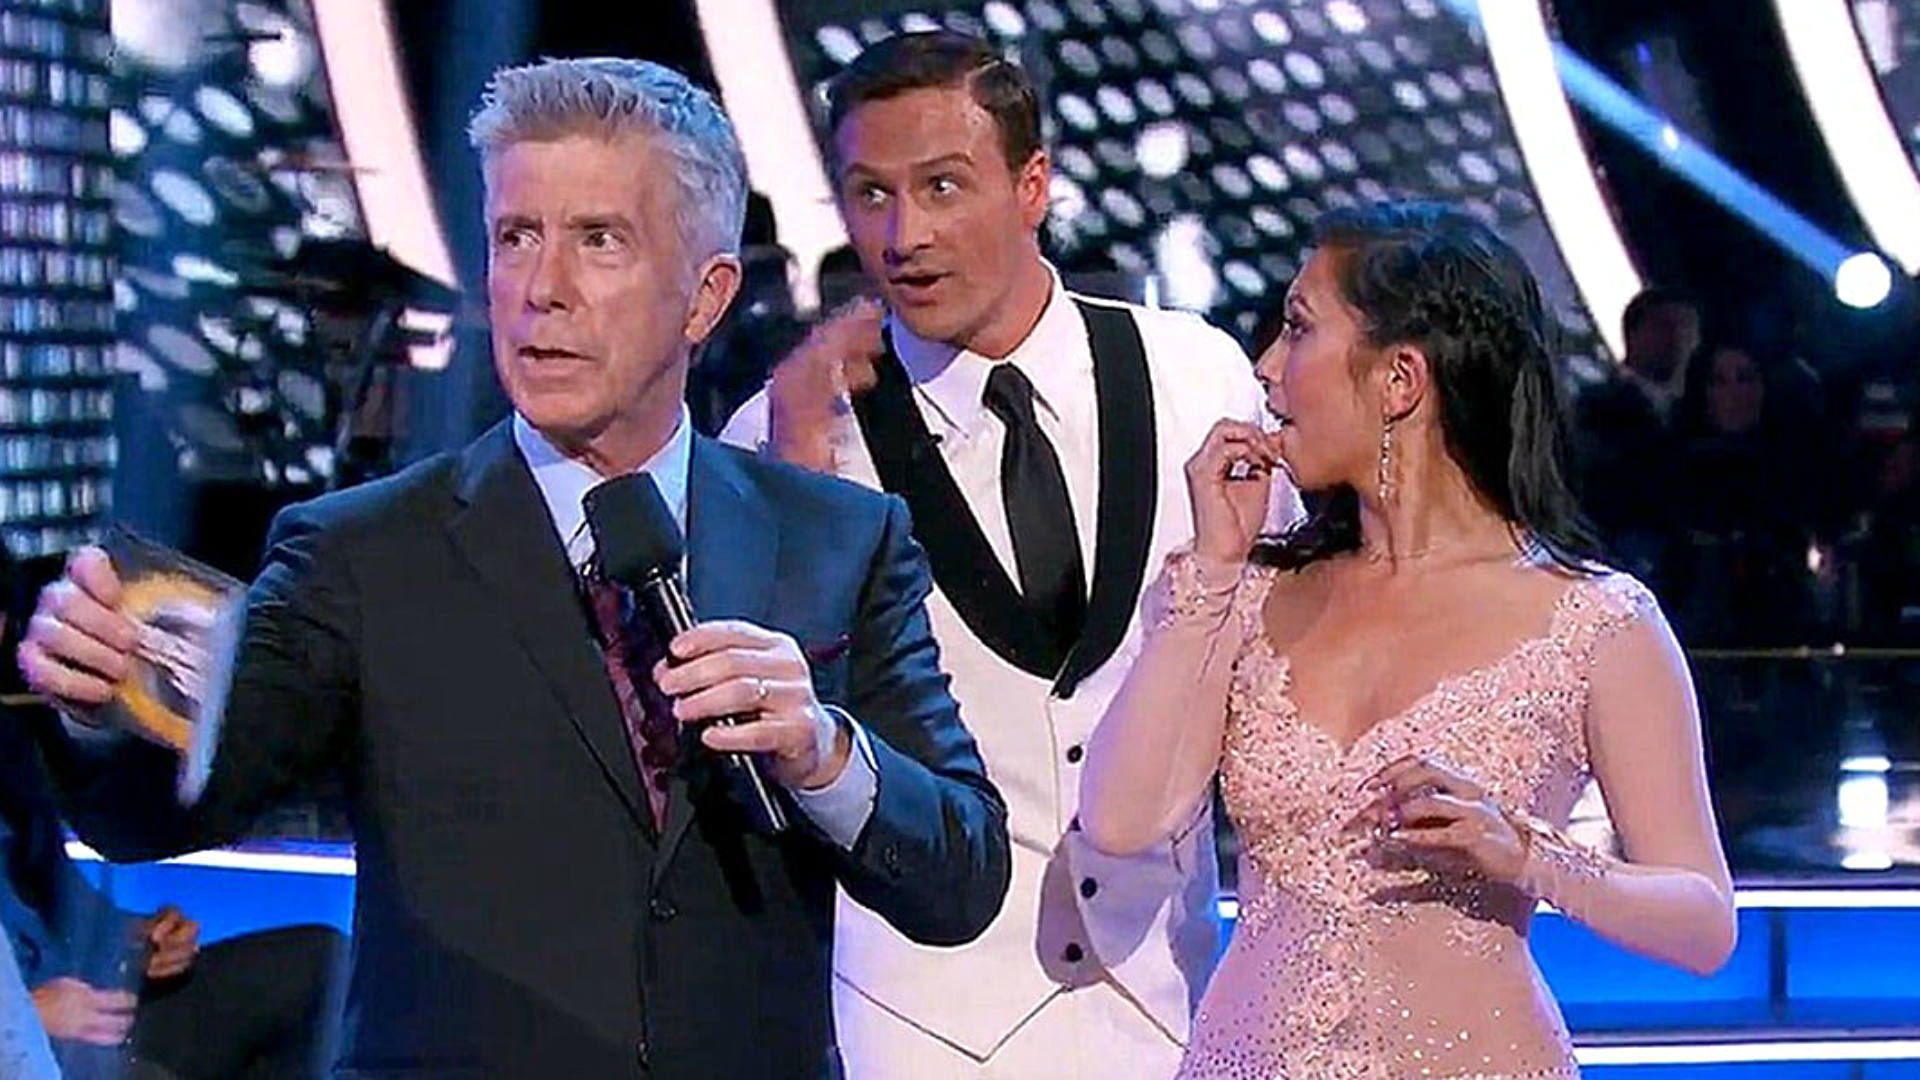 Protesters rush Ryan Lochte during 'Dancing With the Stars' performance